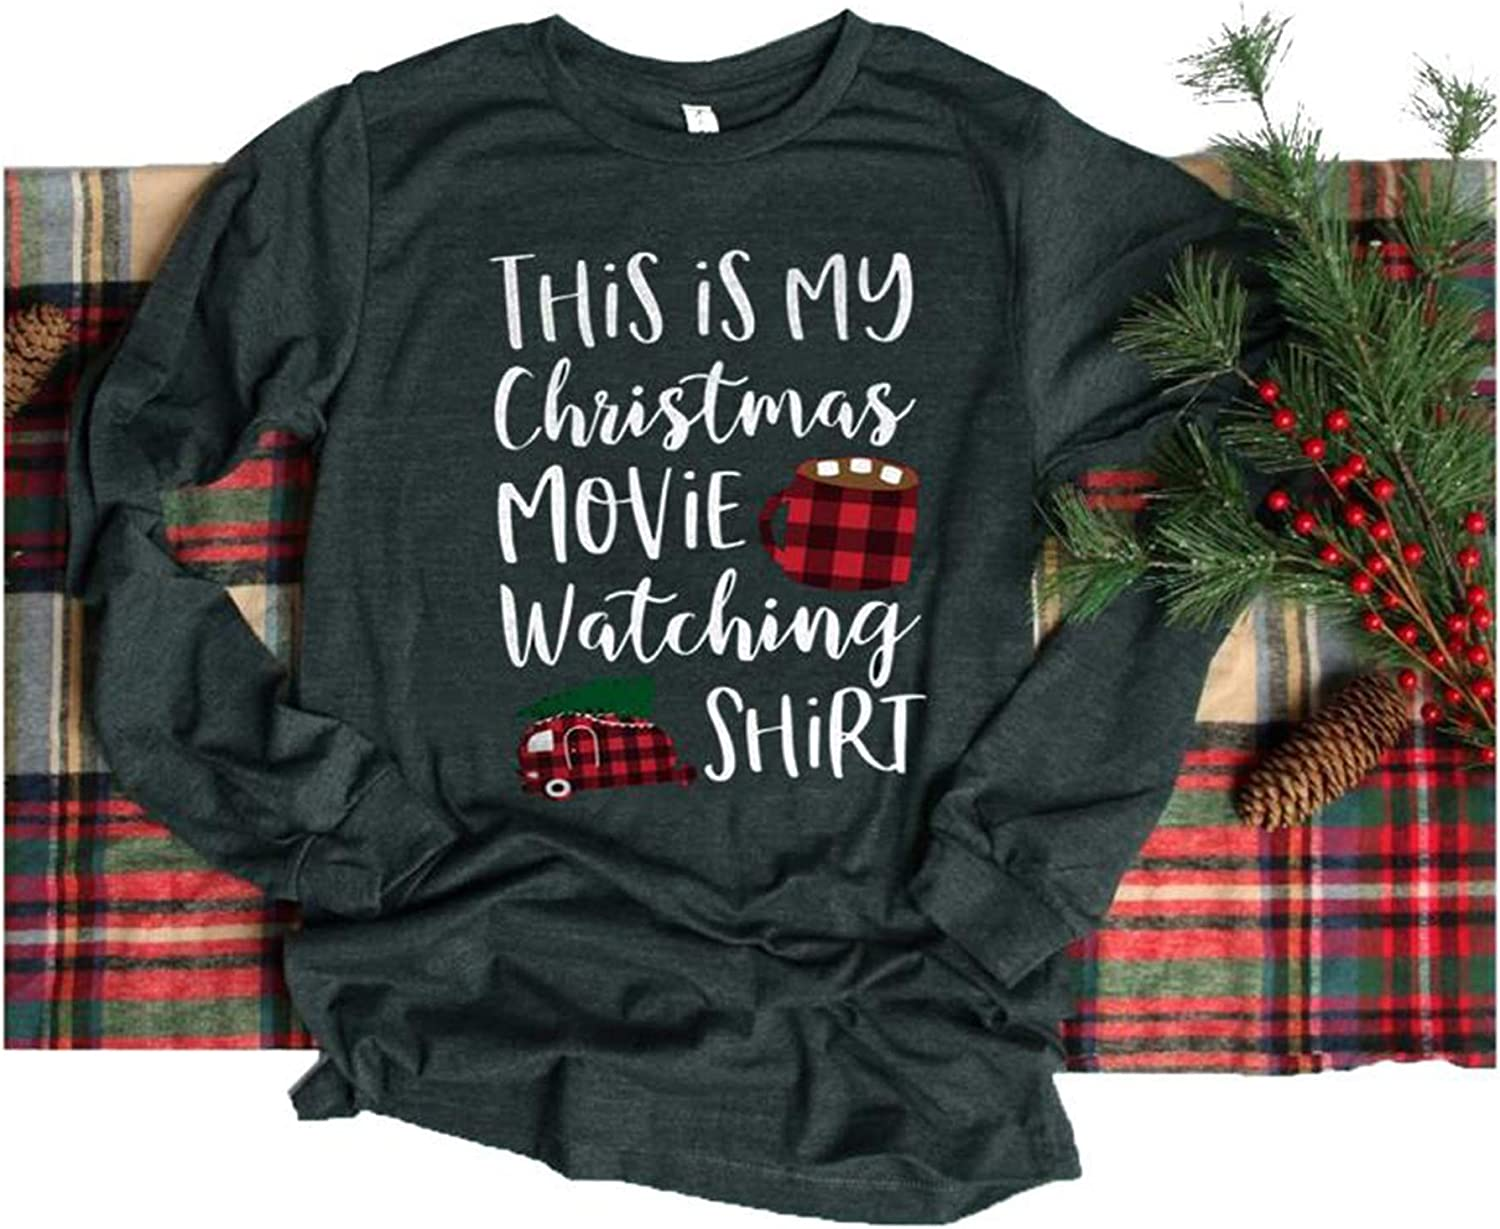 This is My Christmas Movie Watching Shirt Women Funny Christmas Movie Lover Shirt Long Sleeve Funny Vacation Holiday Tops